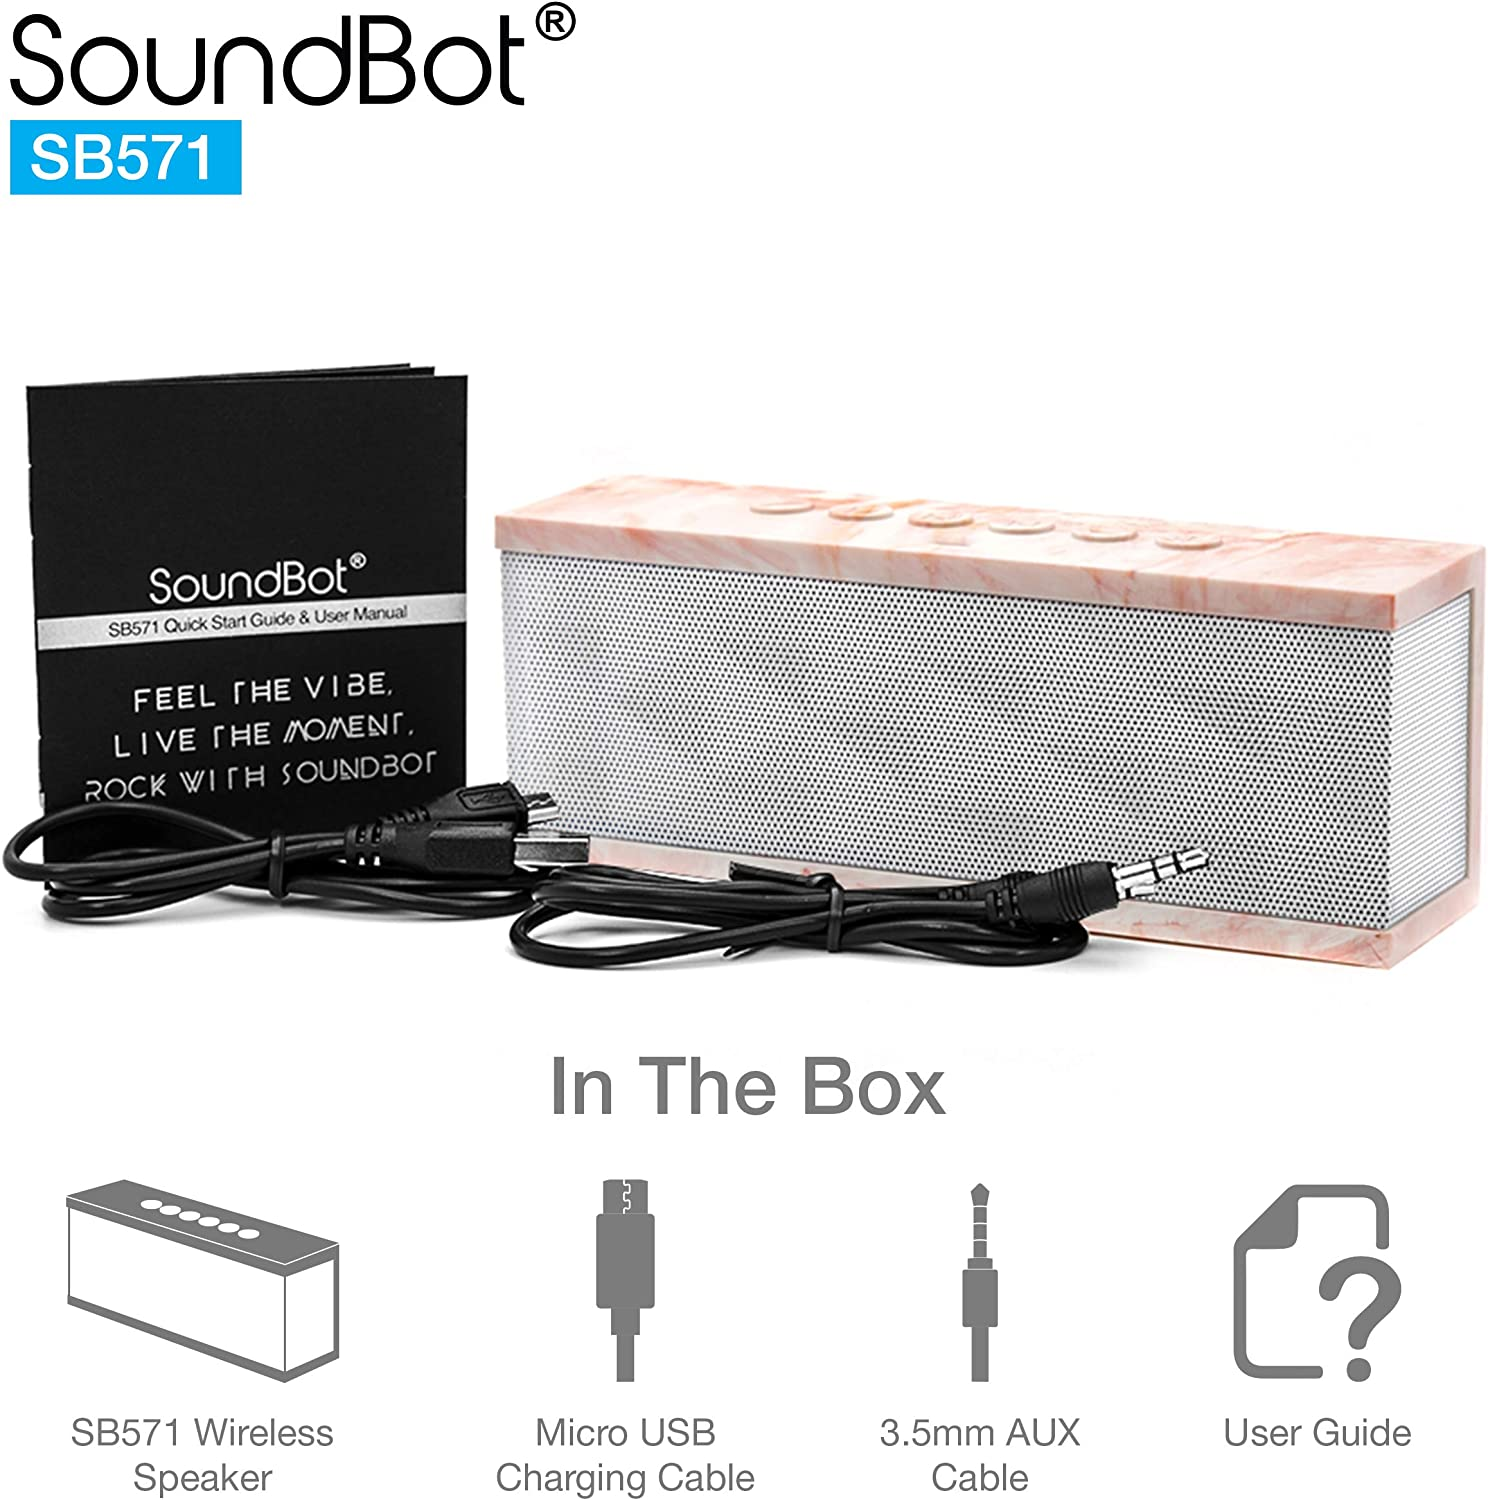 SoundBot SB571 Bluetooth Wireless Speaker for 12 hrs Music Streaming /& Hands-Free Calling w// 6W Built-in Mic 6W 40mm Driver Speakerphone 3.5mm Audio Port Rechargeable Battery for Indoor /& Outdoor Use